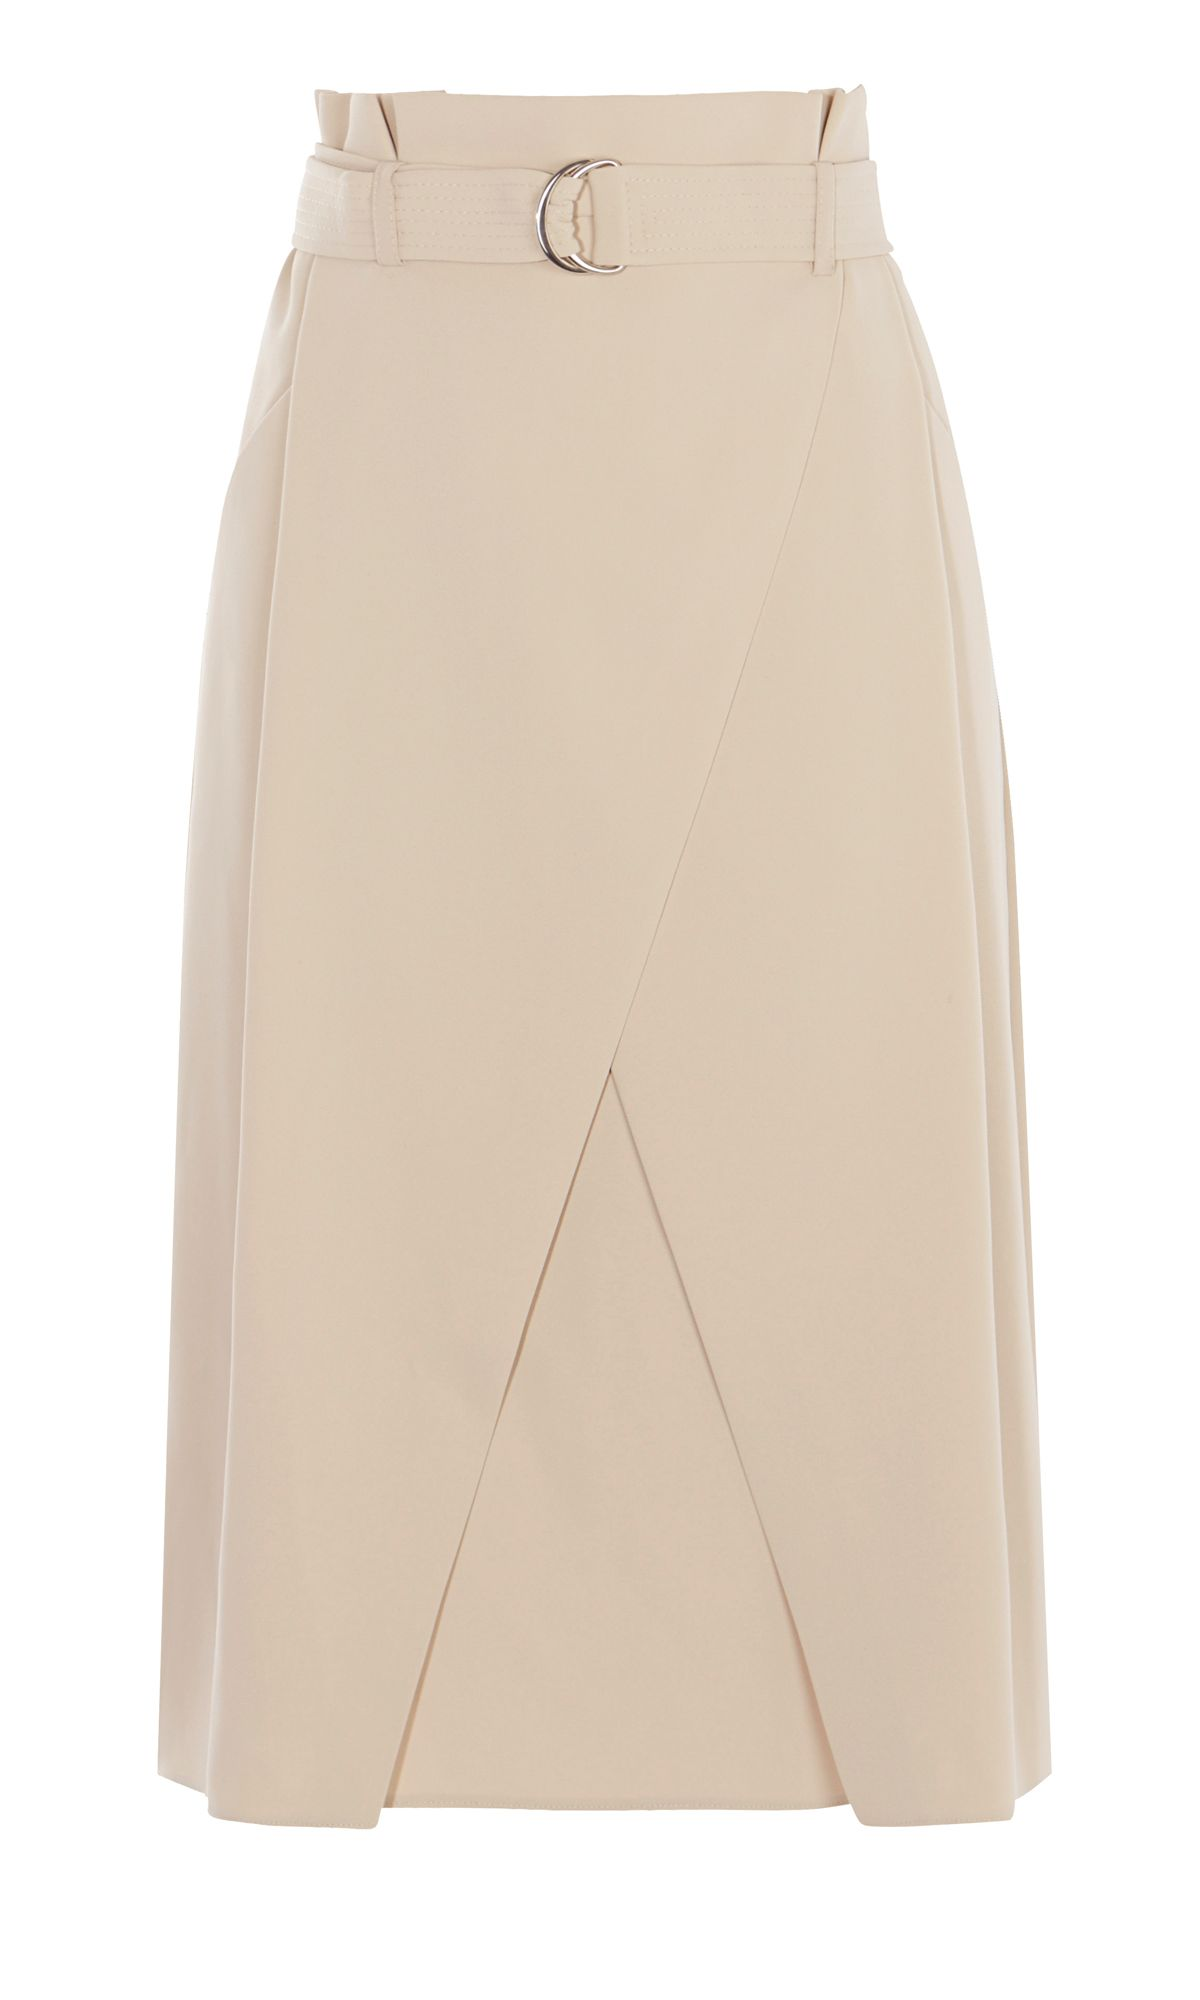 Karen Millen Neutral Wrap Skirt, Neutral